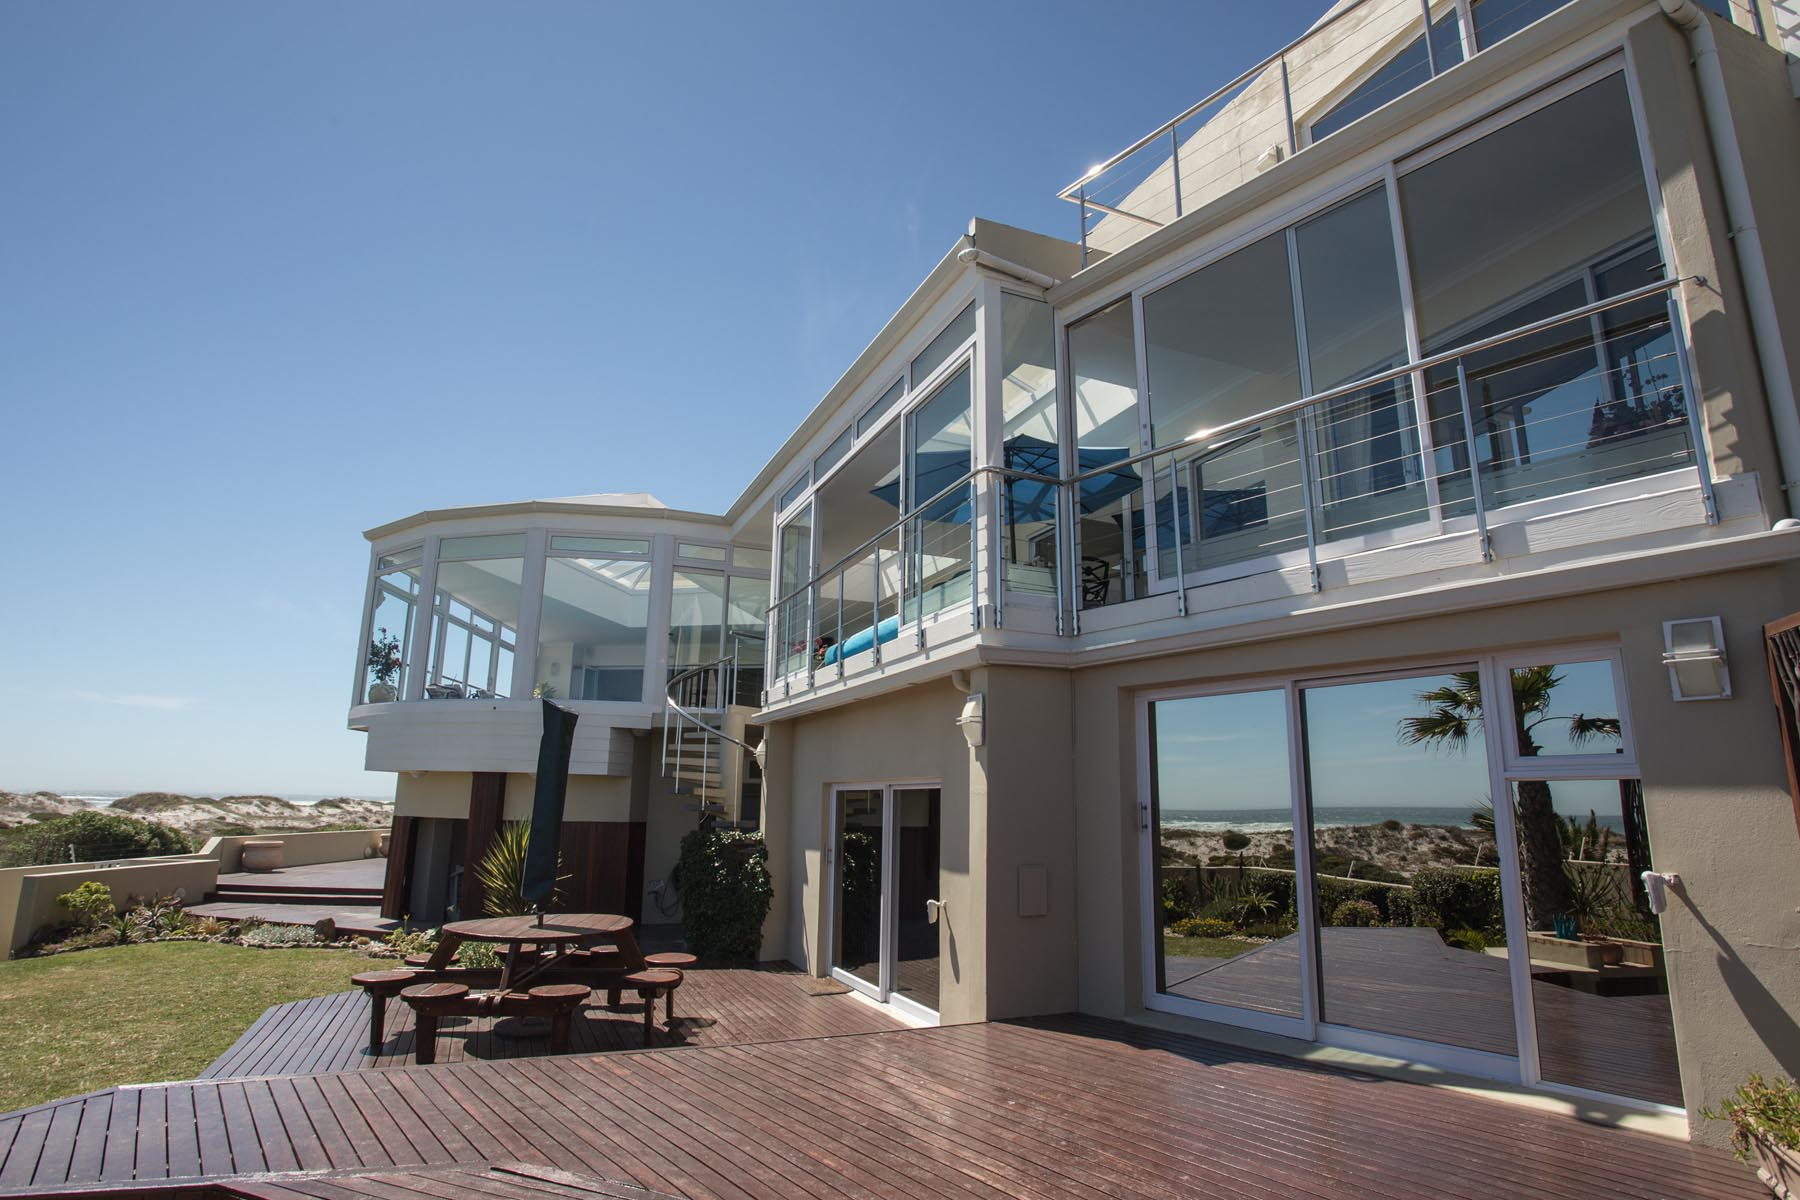 Single Family Home for Sale at Melkbosstrand Cape Town, Western Cape, 7550 South Africa